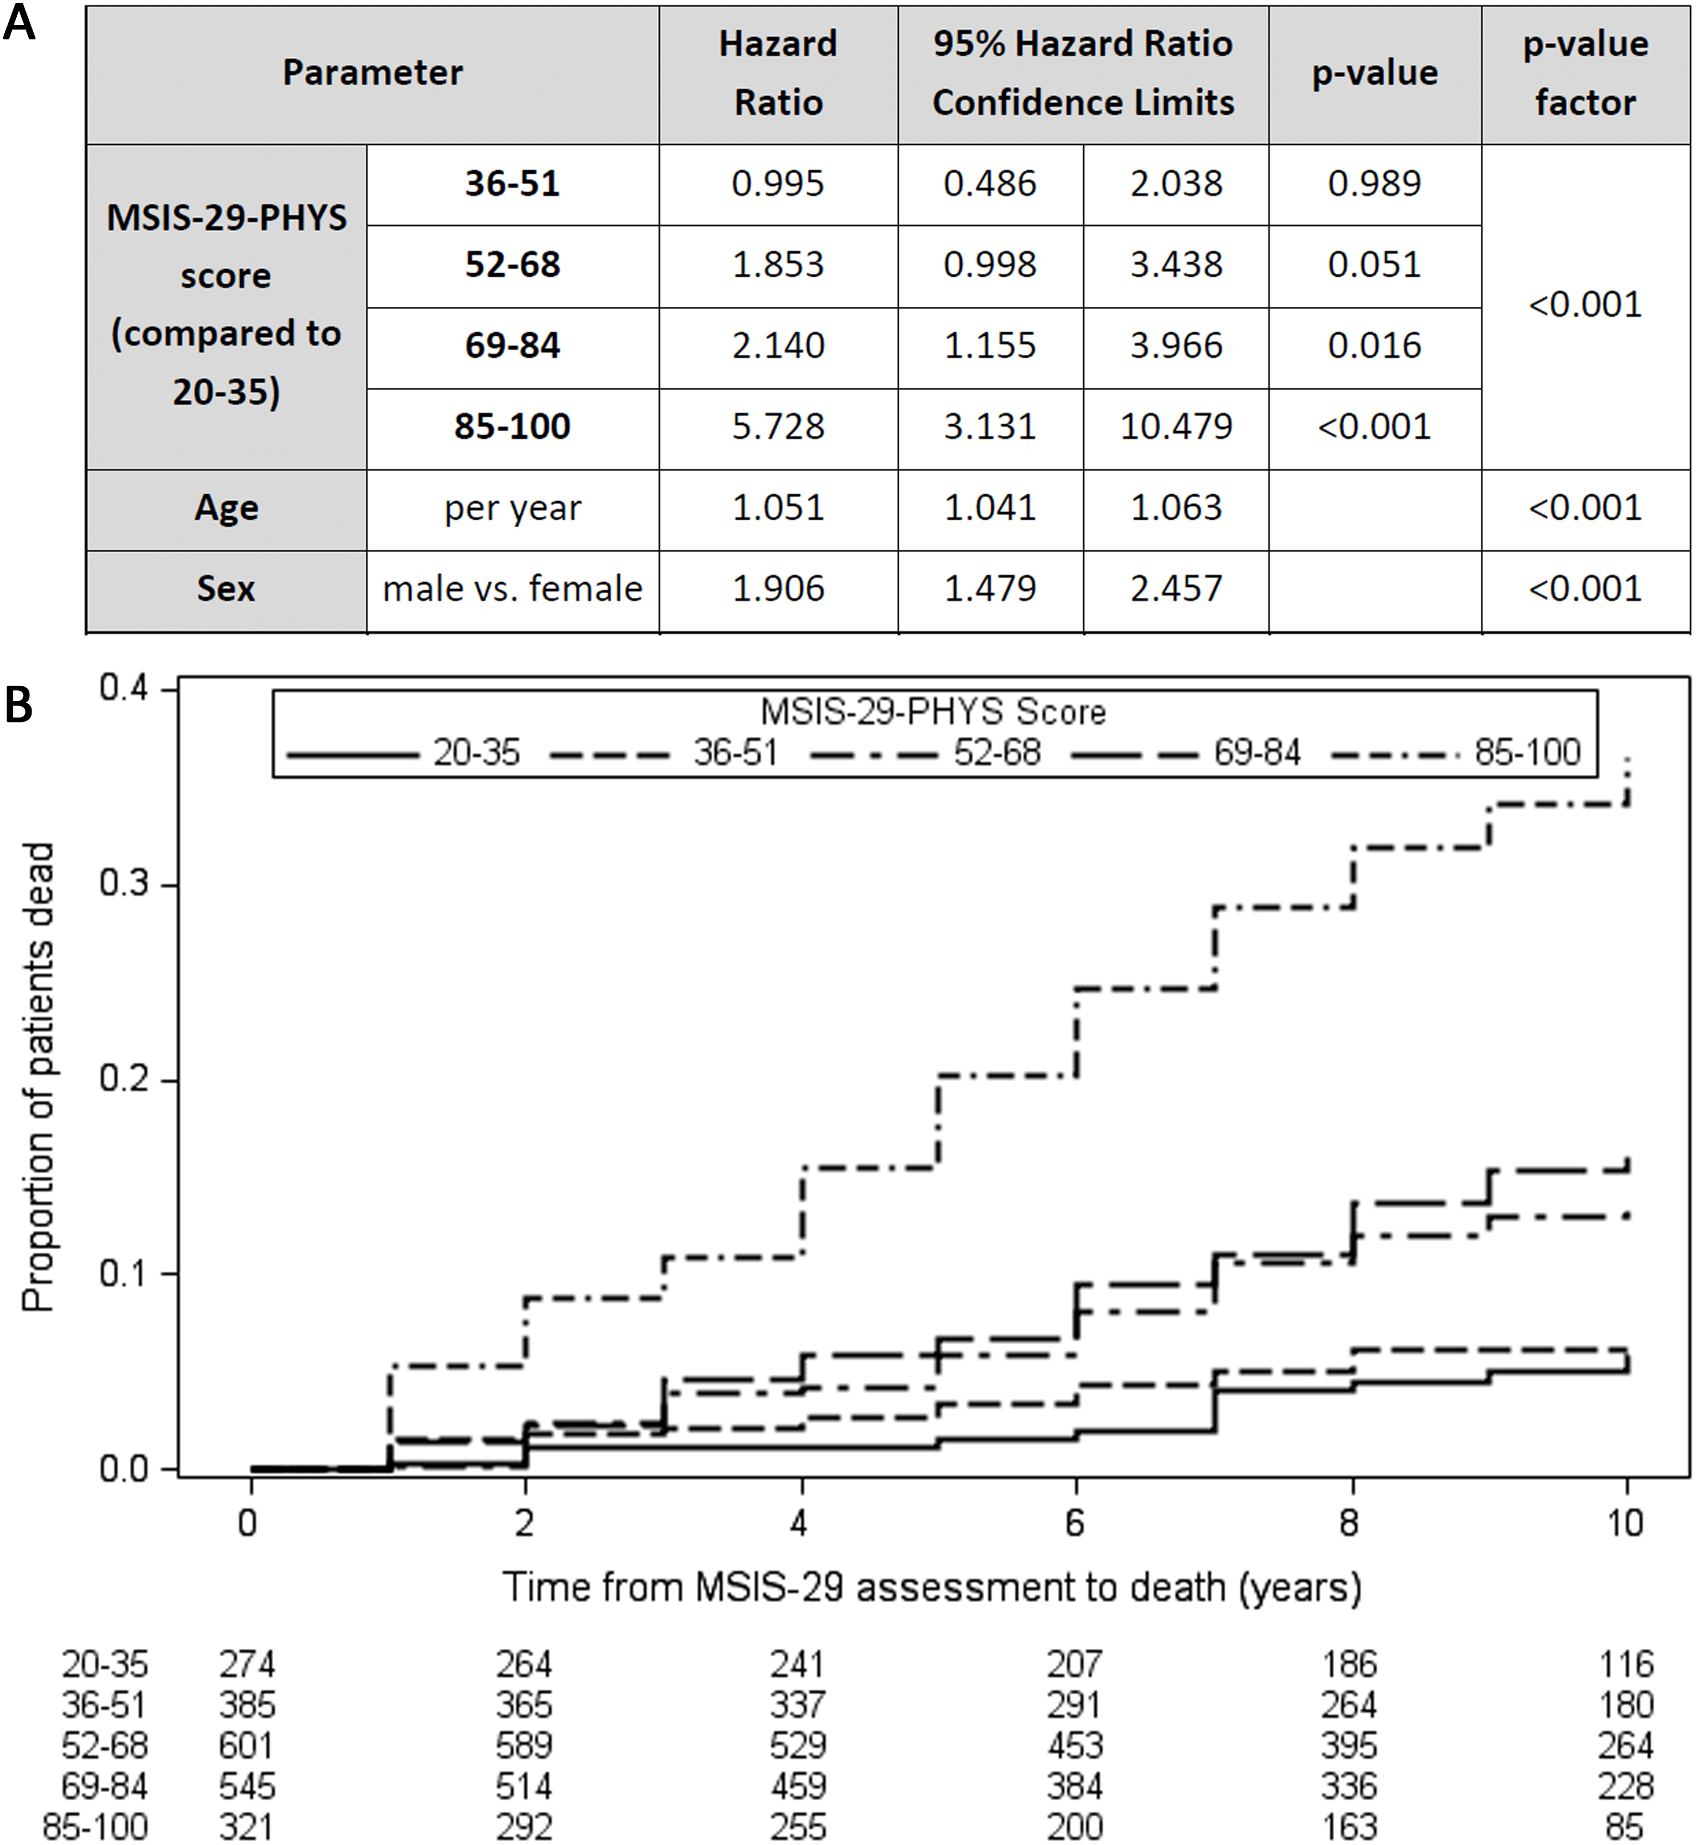 Higher MSIS-29-PHYS scores are associated with reduced survival time.